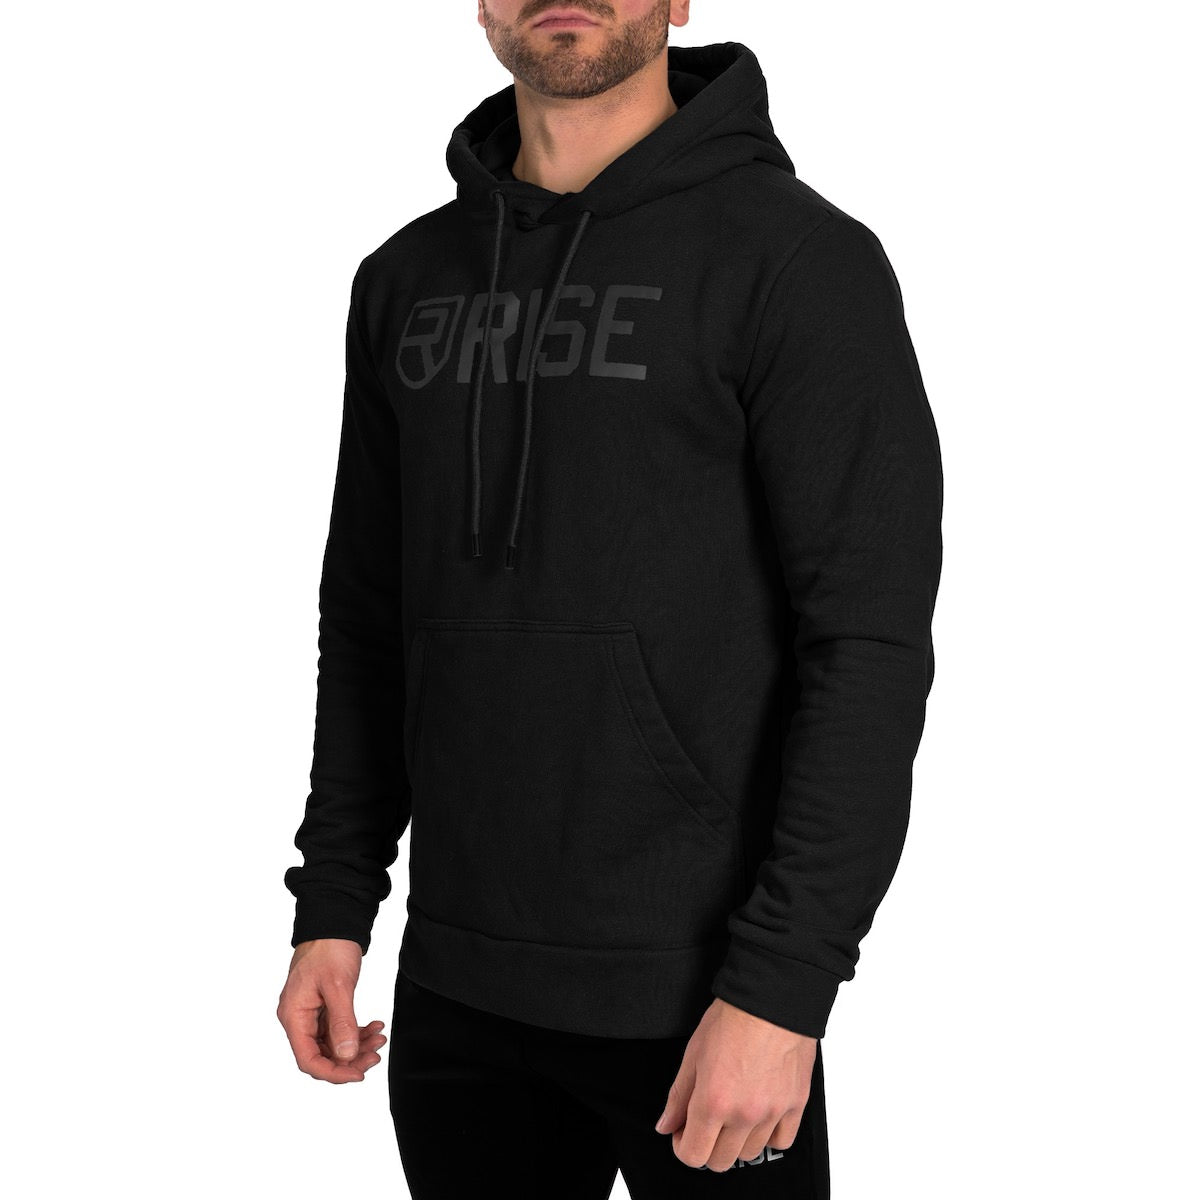 Signature Hoodie - Black on Black